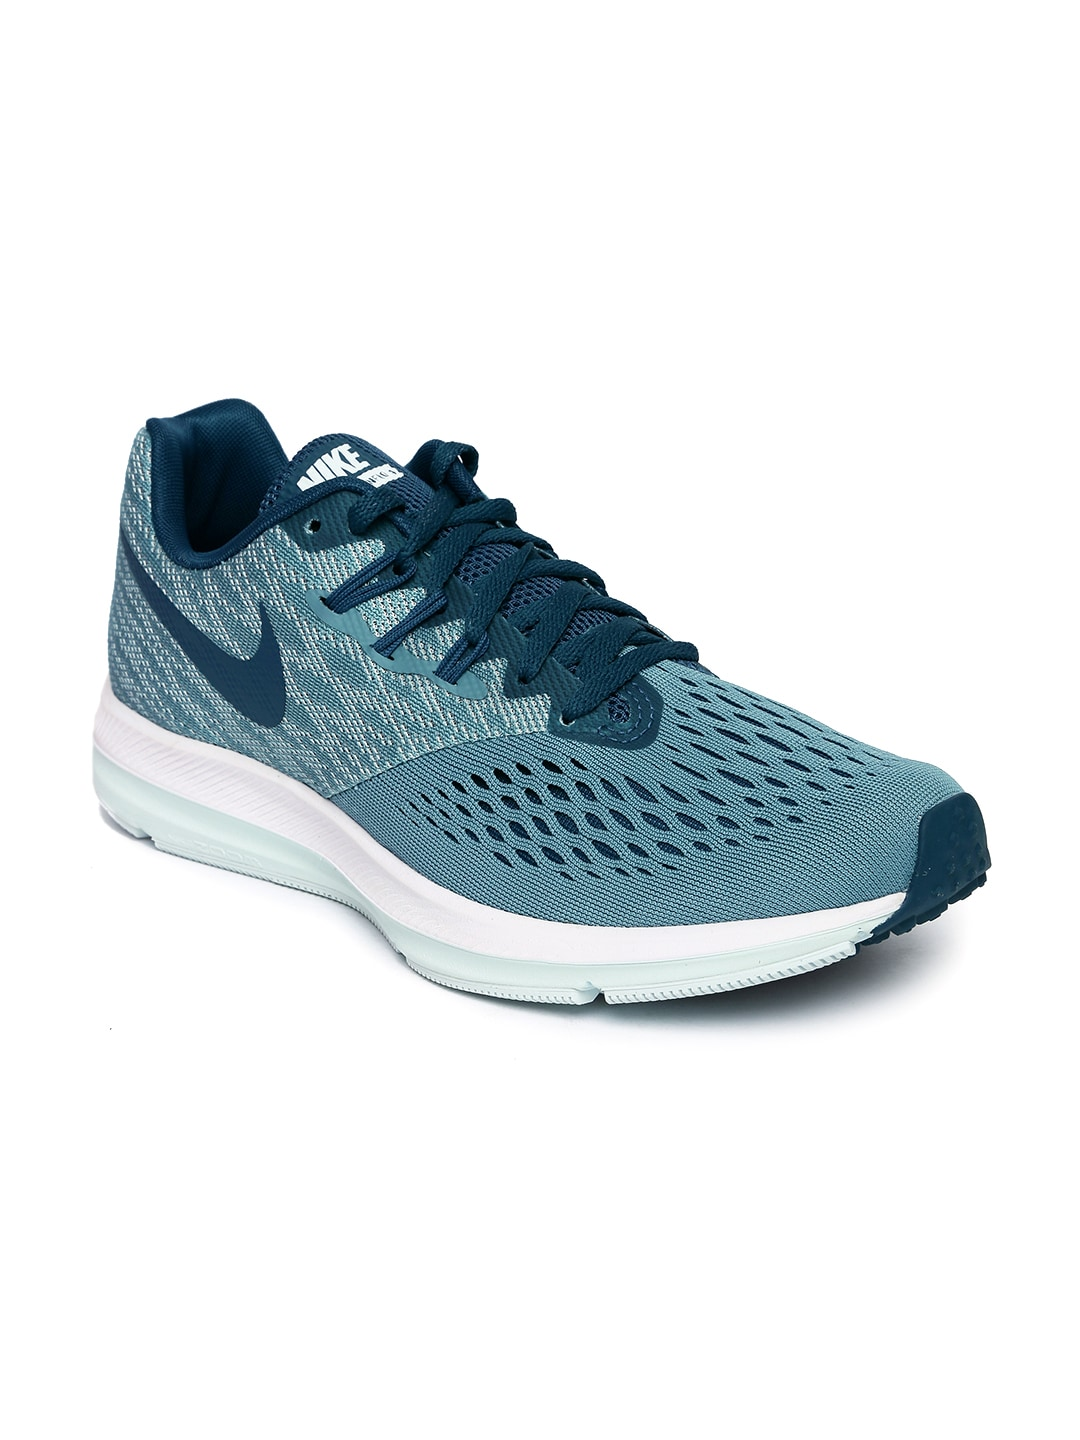 81d549987f7f Women s Nike Shoes - Buy Nike Shoes for Women Online in India